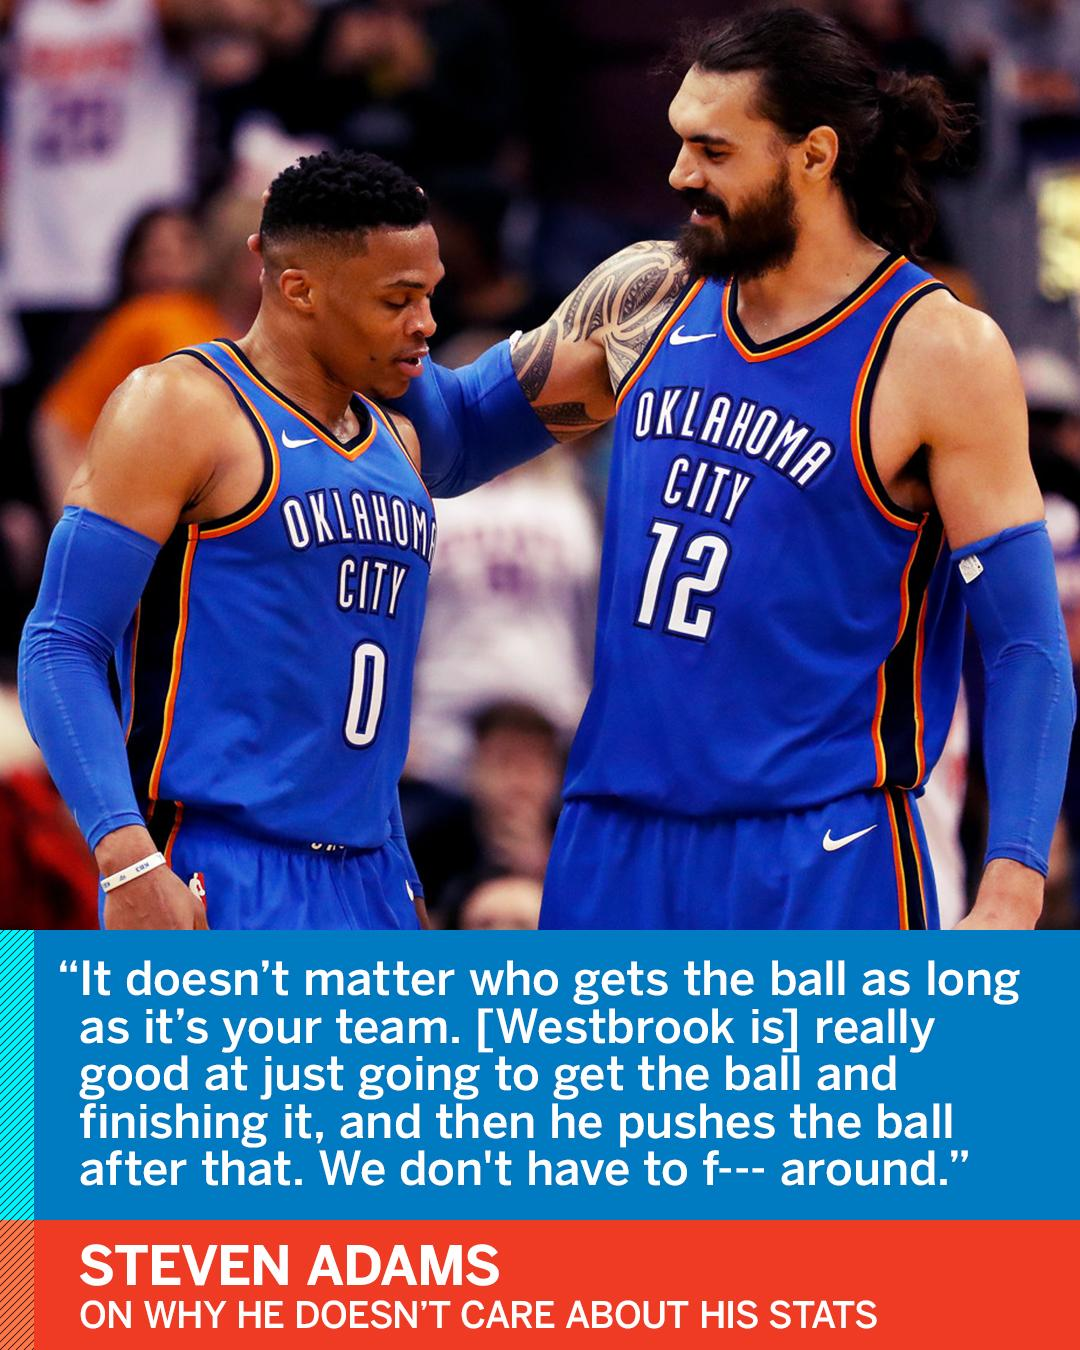 The only stat Steven Adams cares about?  Wins. https://t.co/ZqfbsqnCgG https://t.co/8f4aAI8SlV